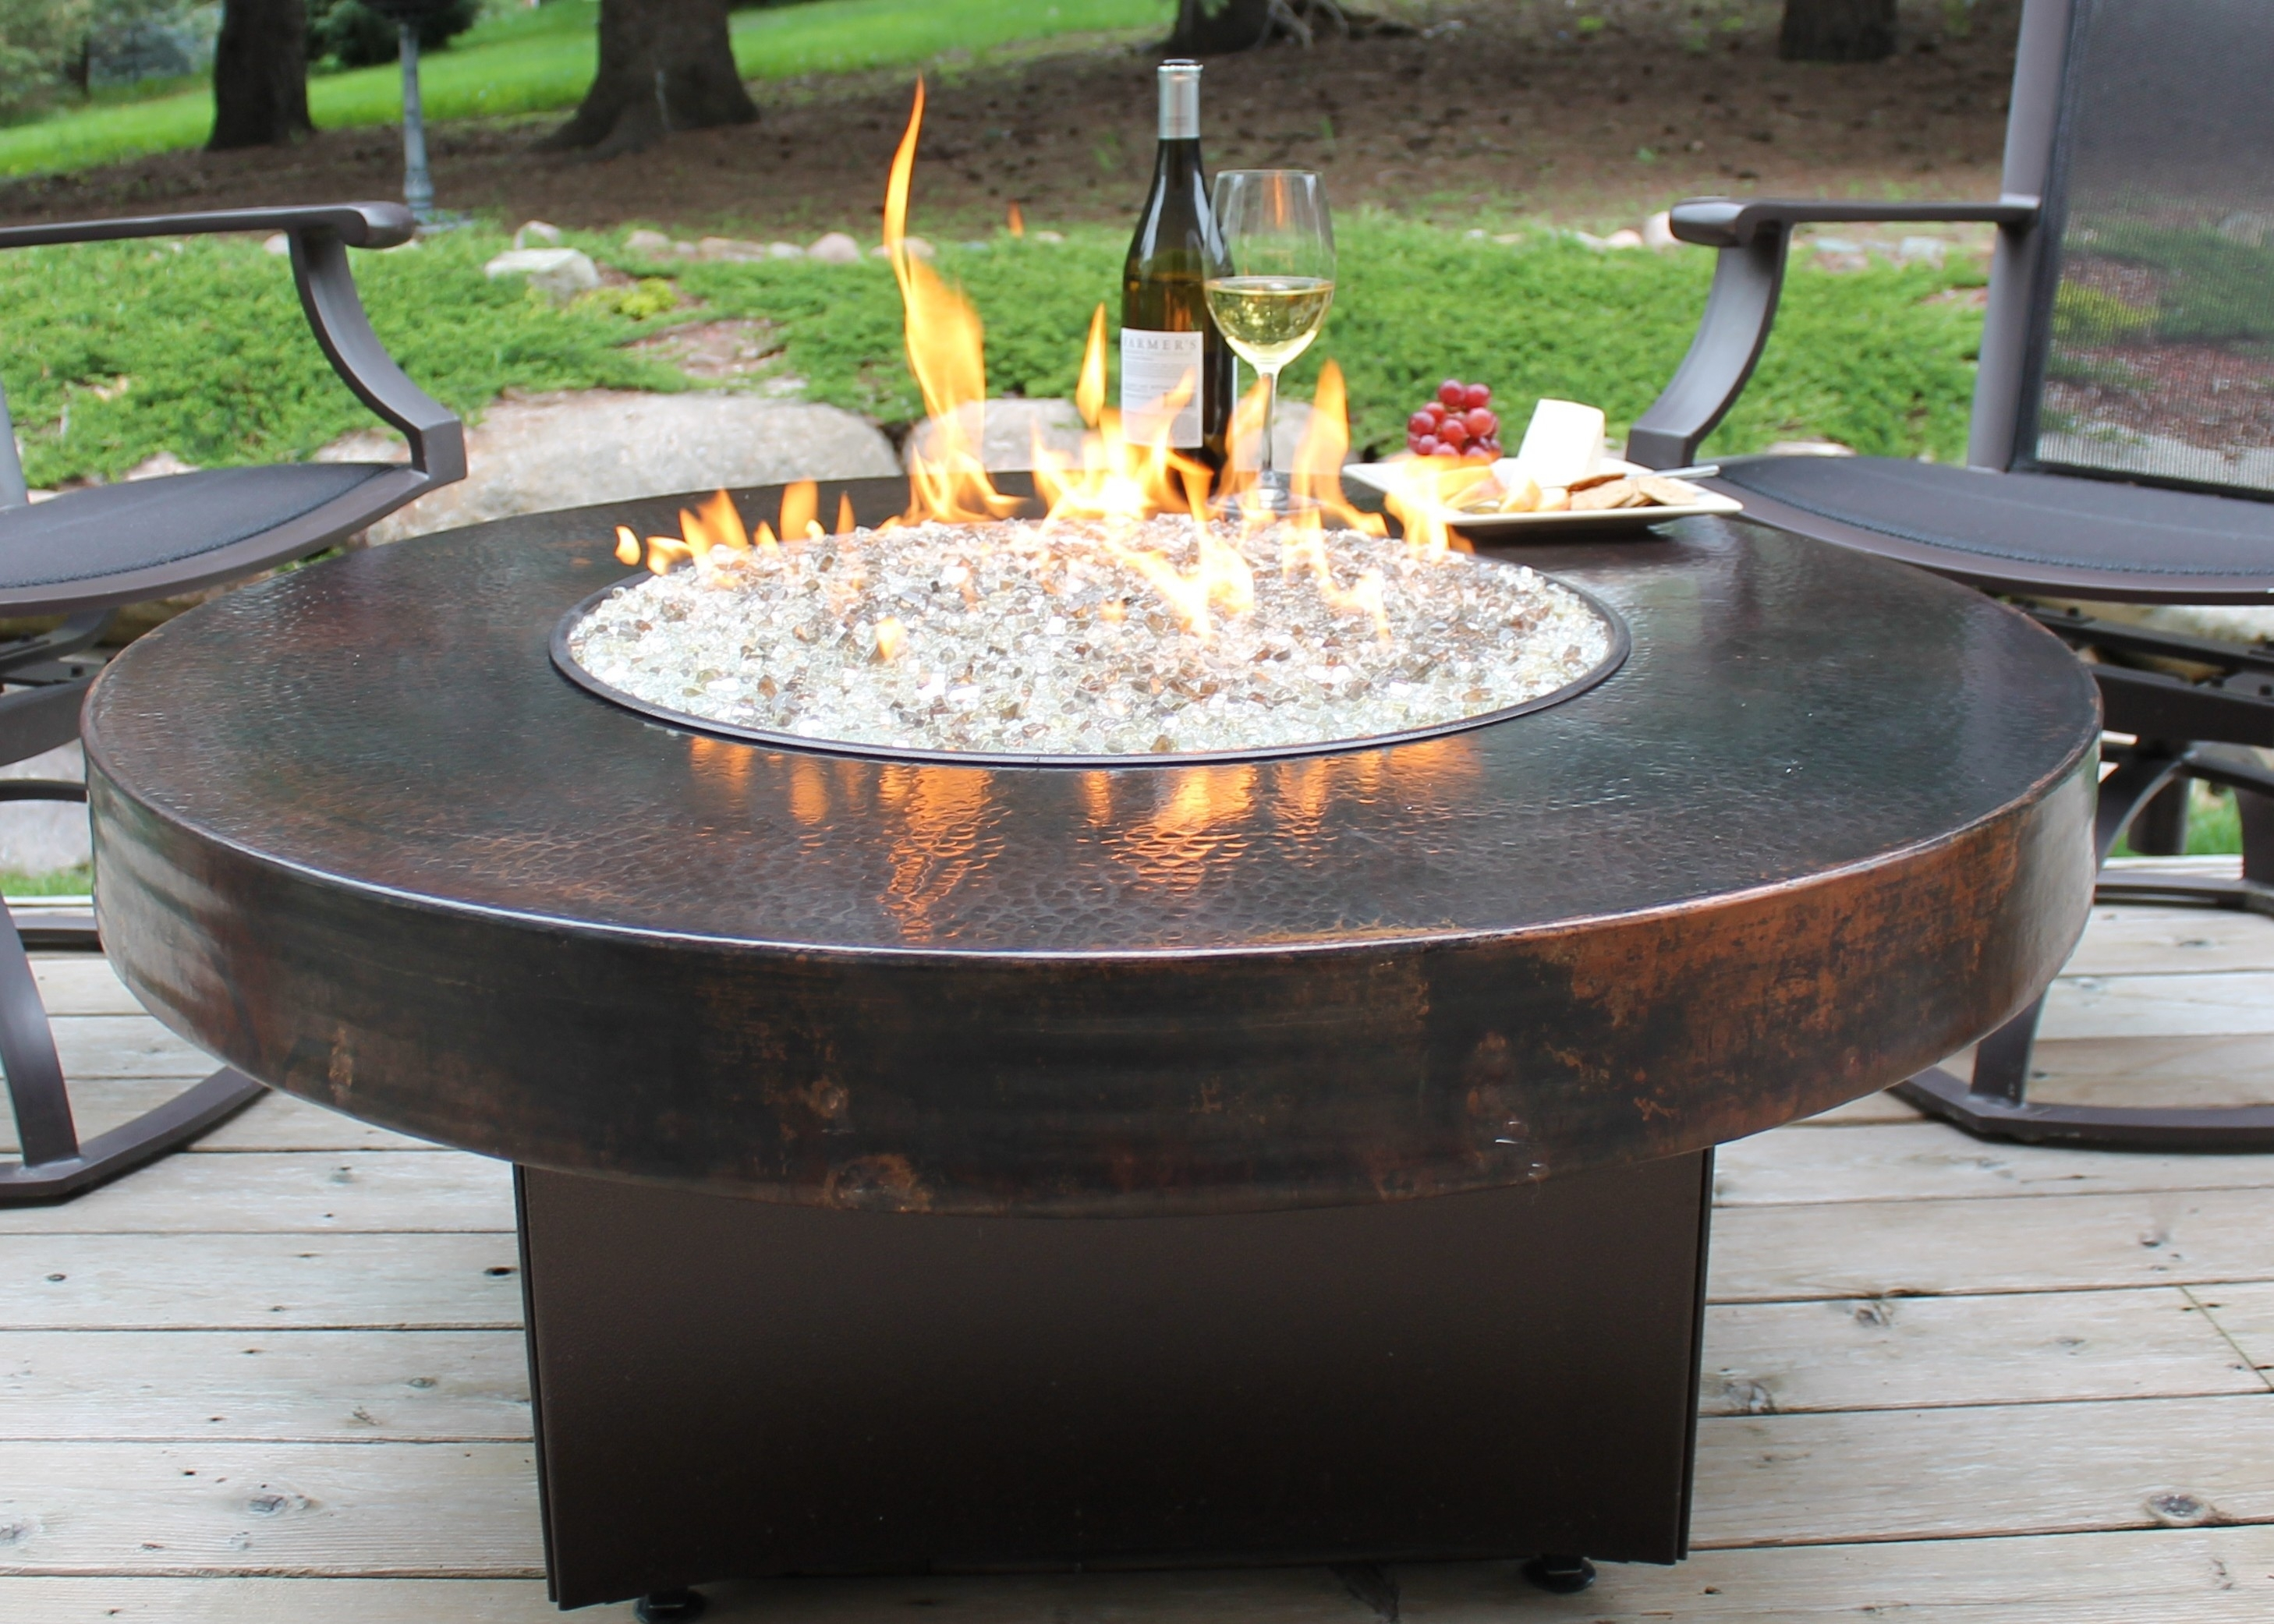 Image of: The Warming Beauty Of Fire Pit Glass Rocks The Latest Home Decor Pertaining To Outdoor Fireplace Glass Rocks Be Warm All Year Round With Outdoor Fireplace Glass Rocks